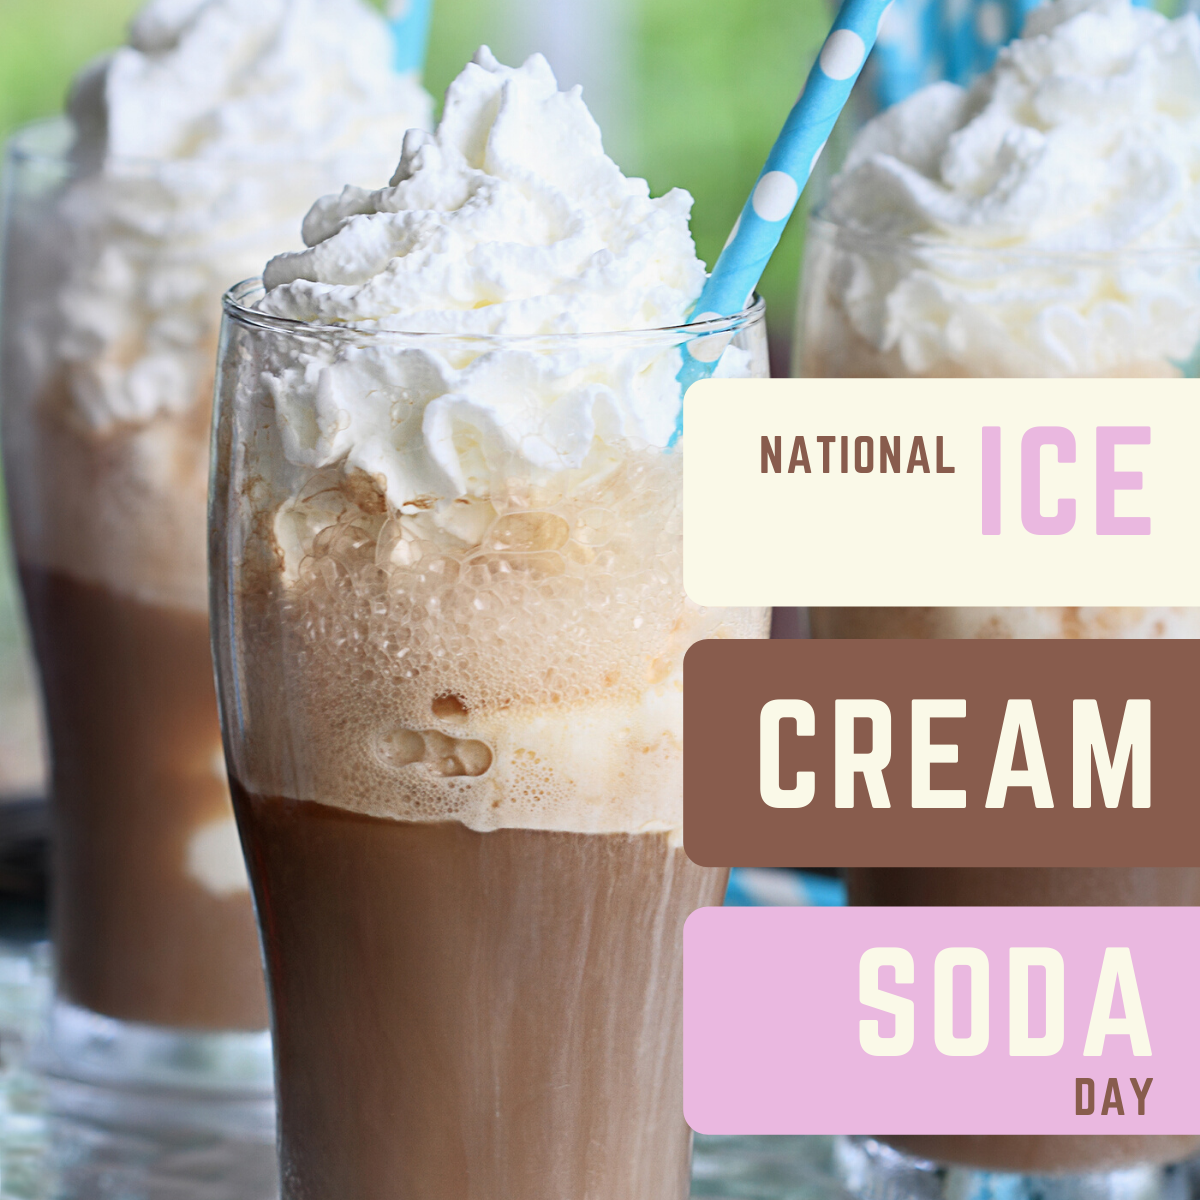 National Ice Cream Soda Day